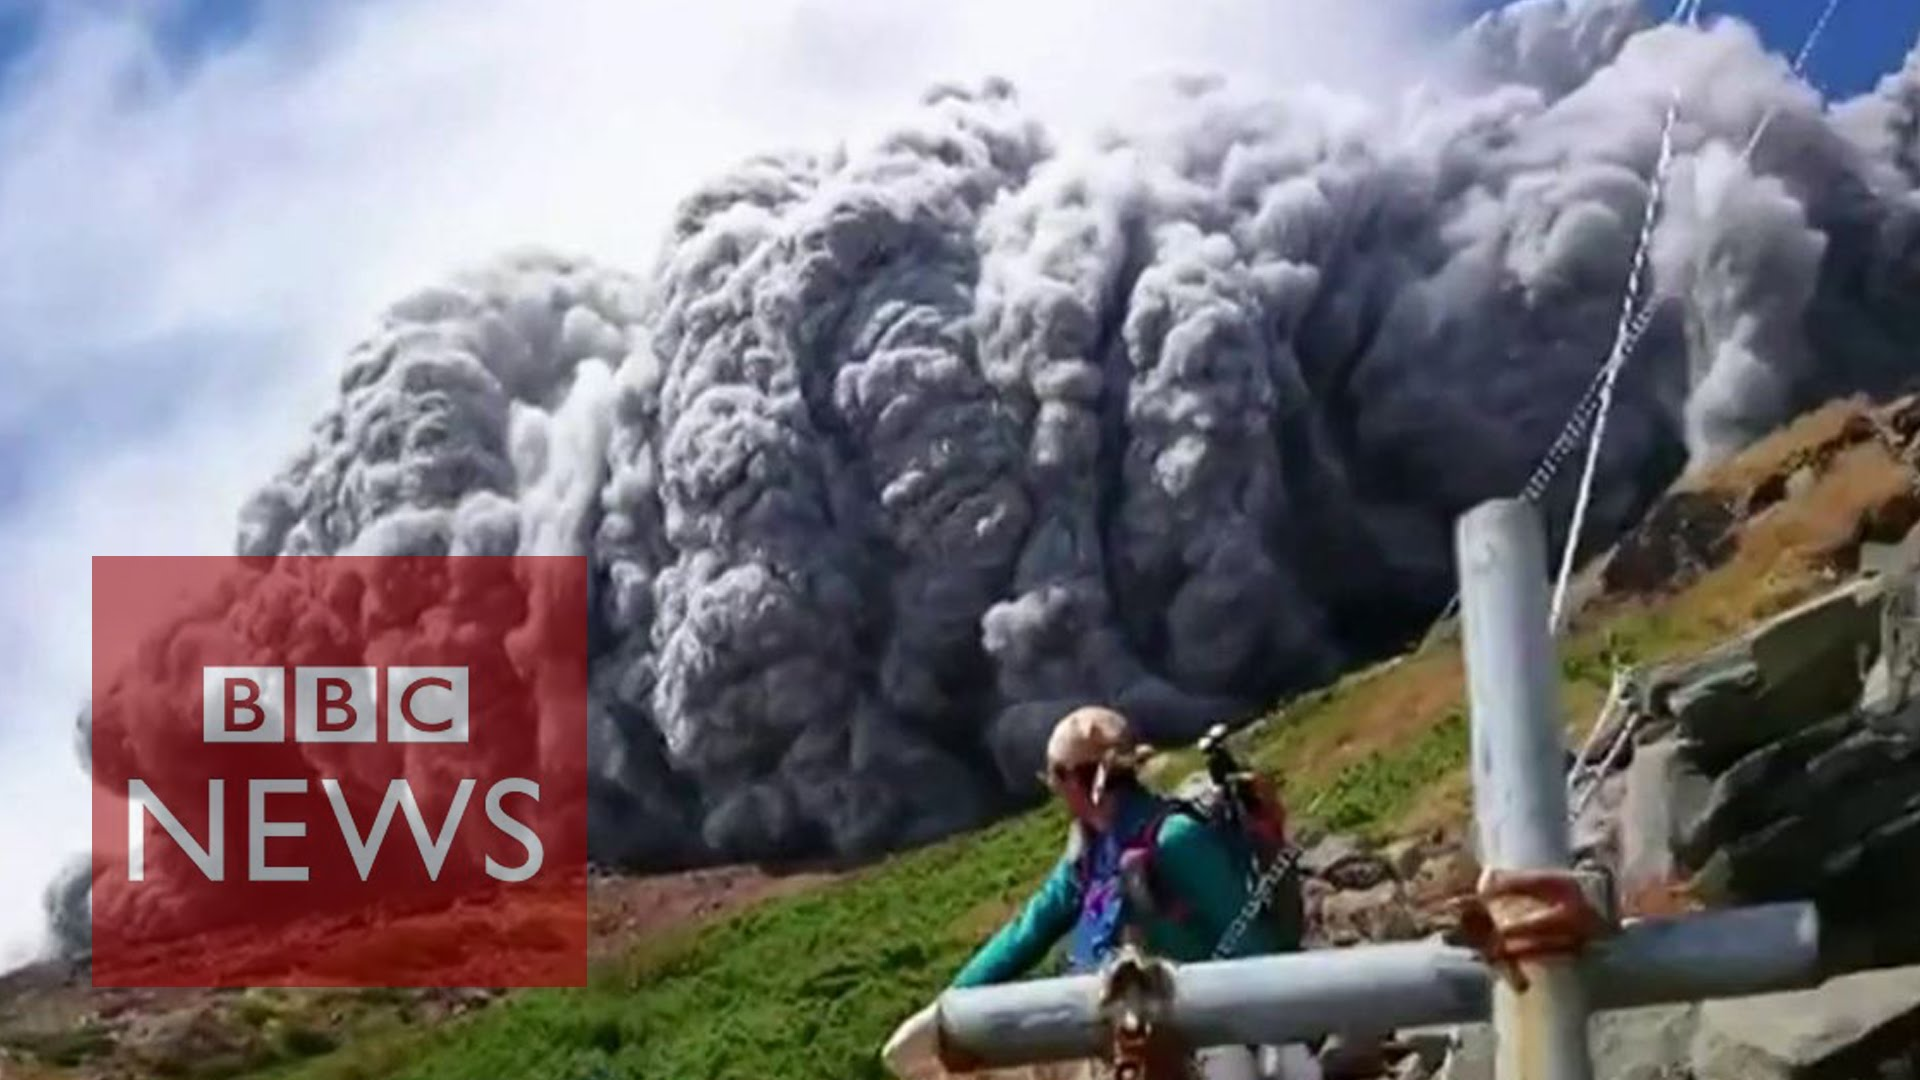 「日本火山爆發──生死瞬間」- Japan Volcano Shoots Rock & Ash on Mount Ontake